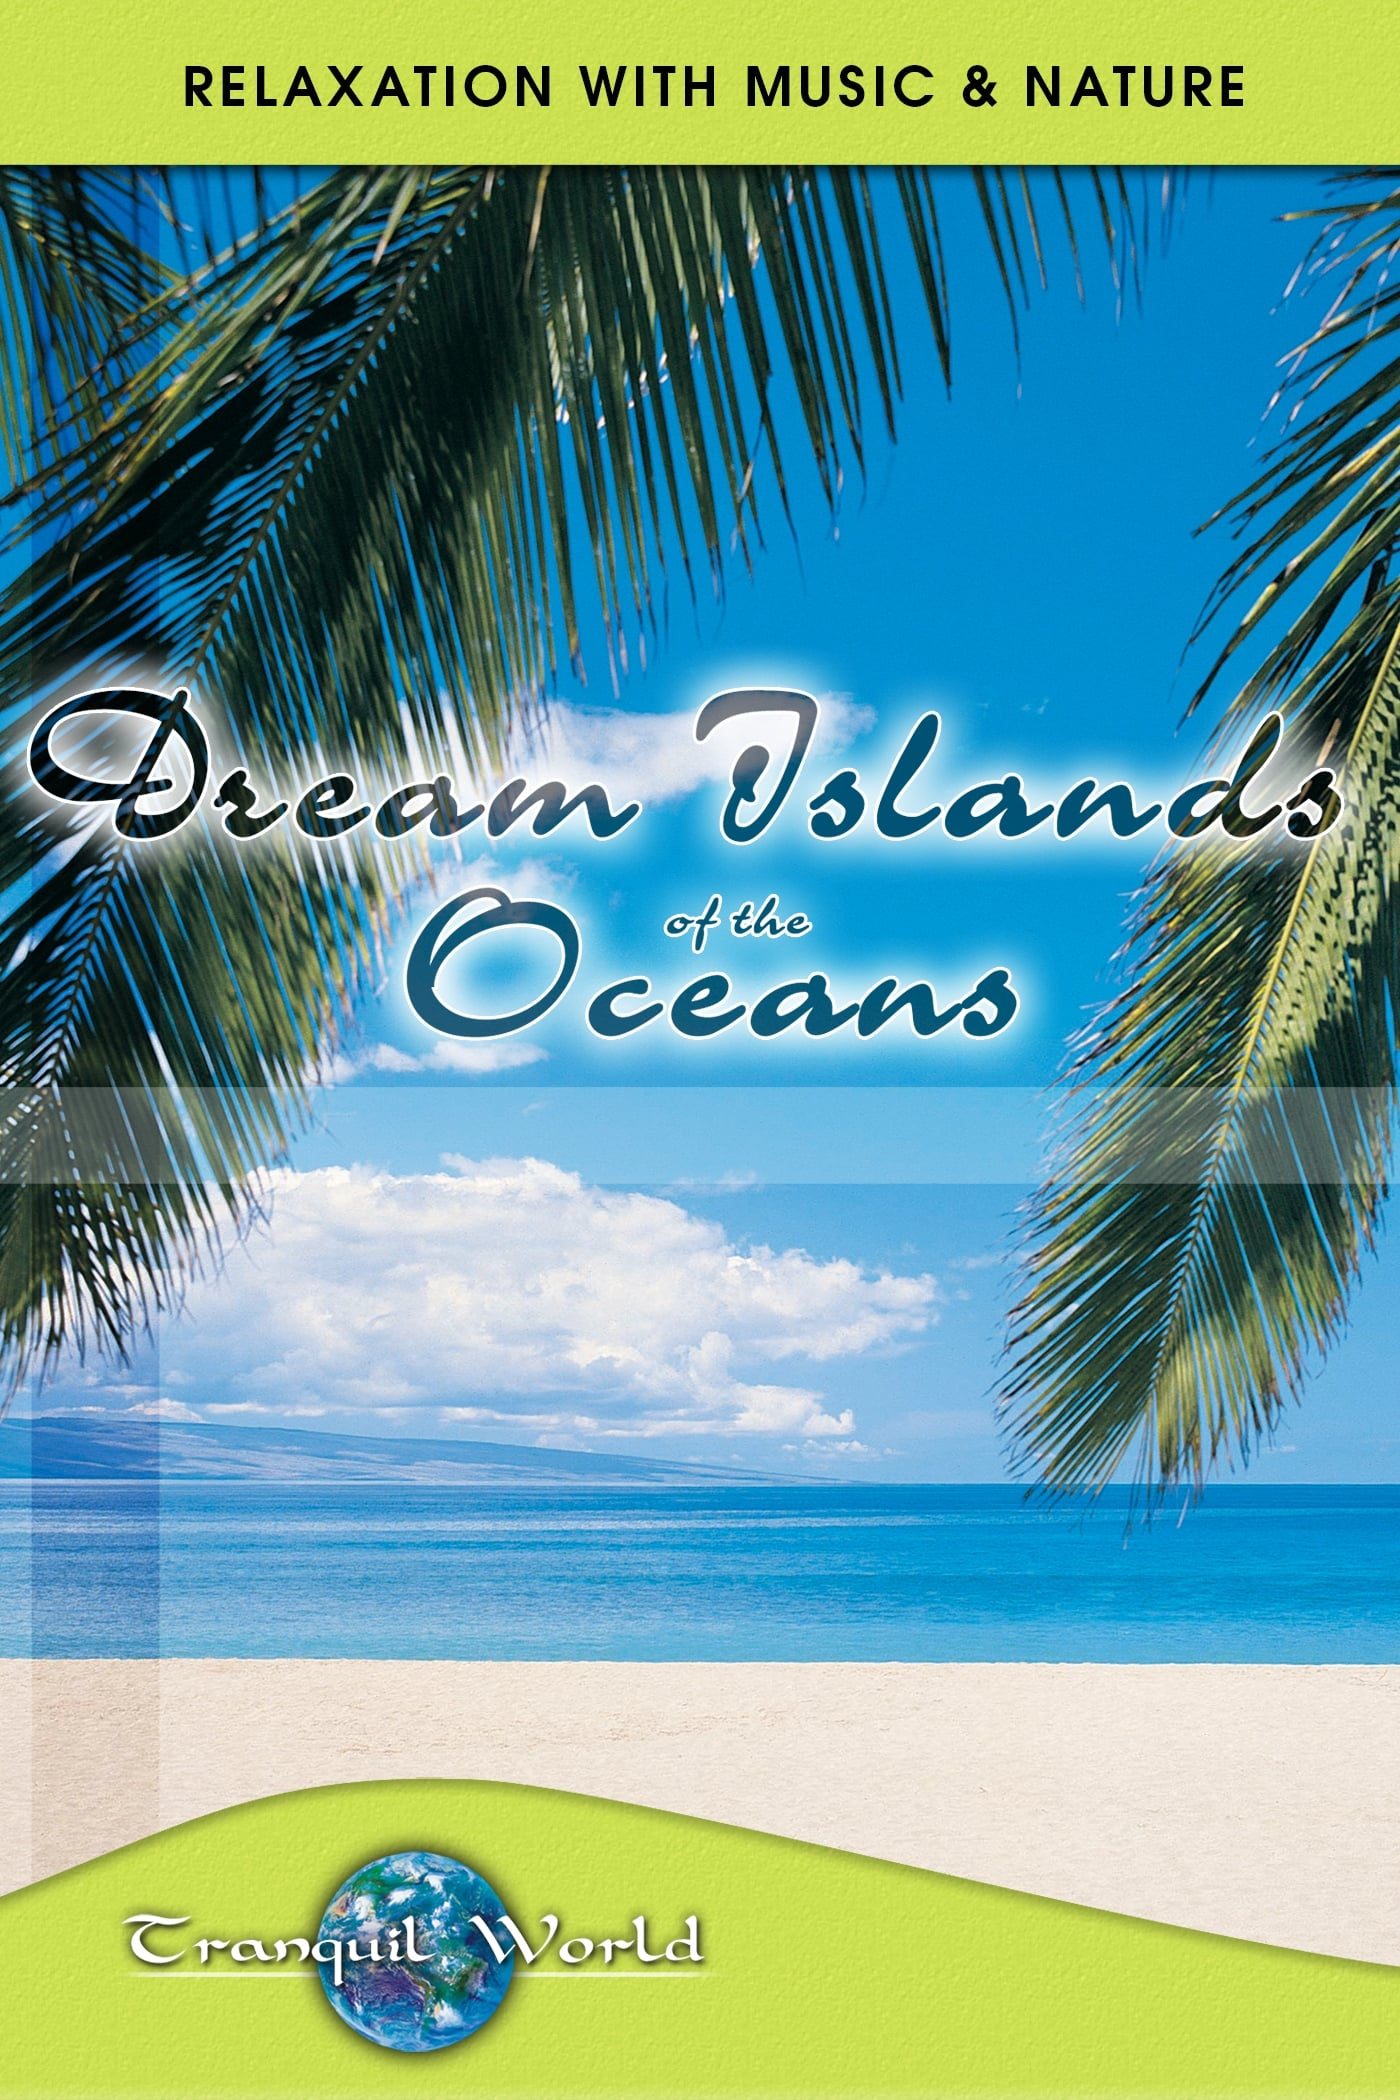 Dream Islands of the Oceans: Tranquil World - Relaxation with Music & Nature on FREECABLE TV